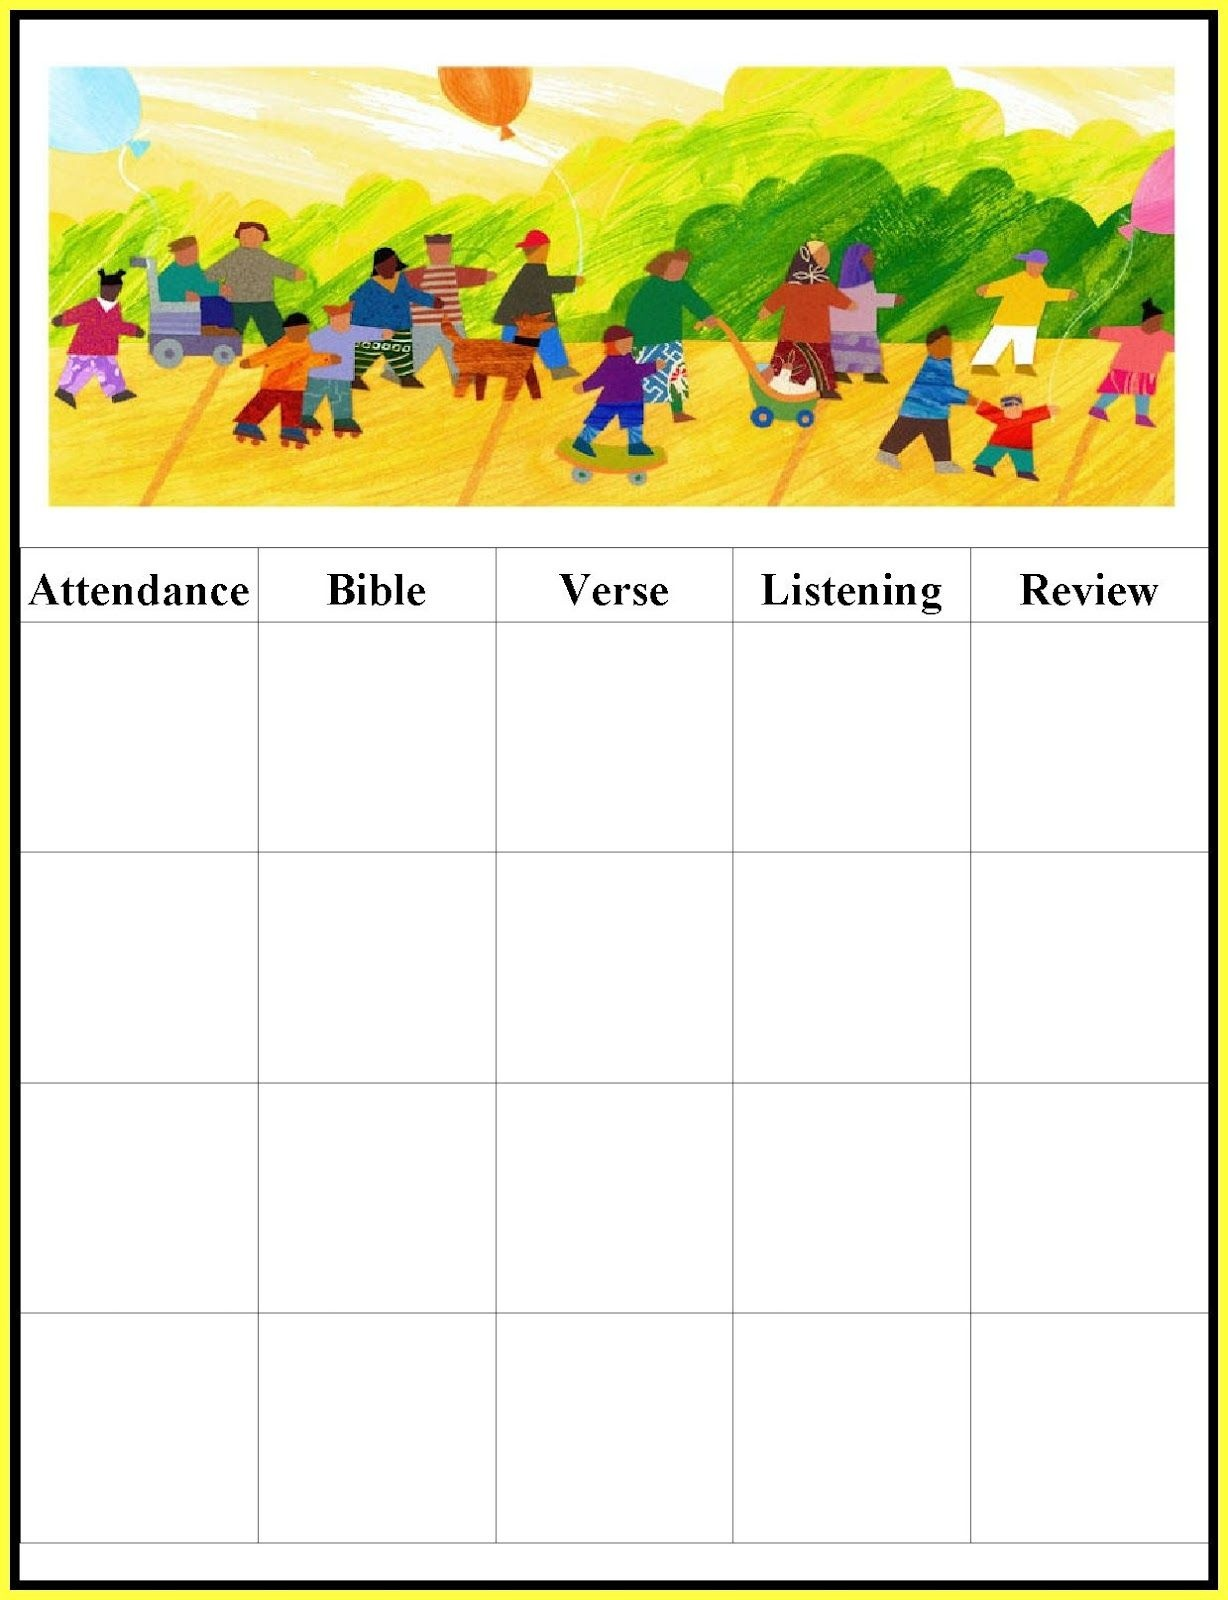 Childrens Gems In My Treasure Box: Sunday School - Attendance Charts - Sunday School Attendance Chart Free Printable